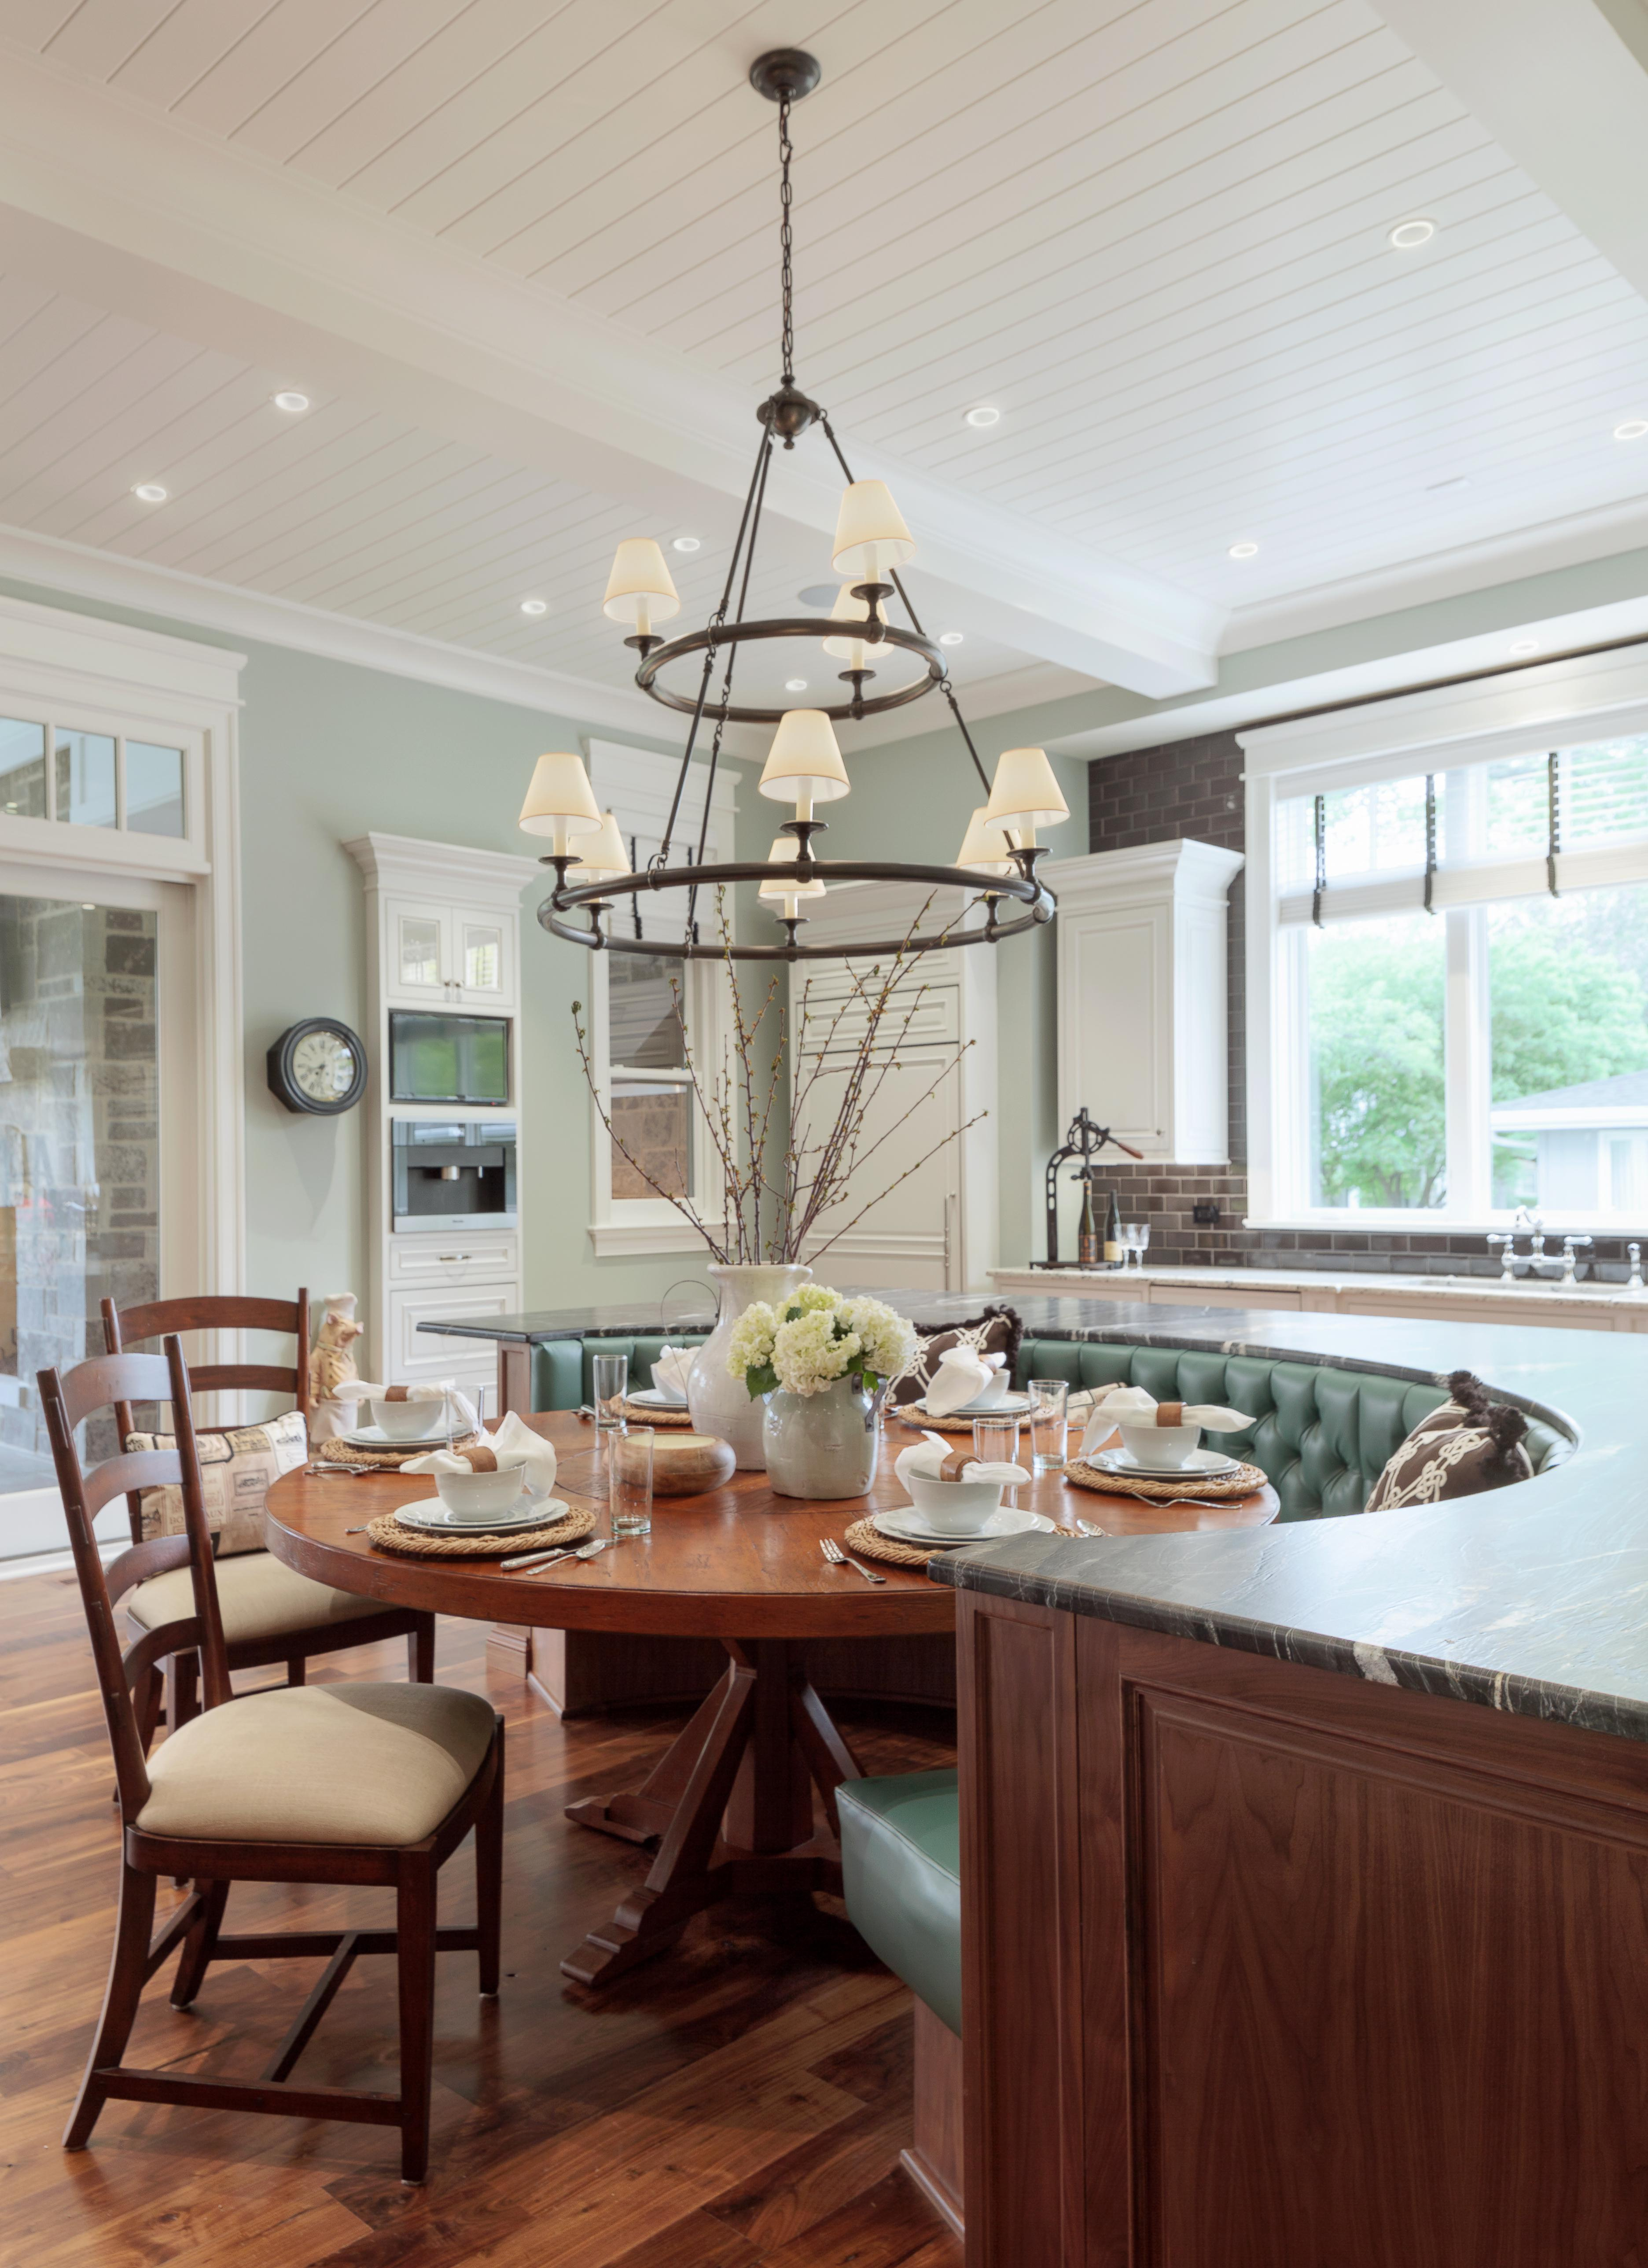 Circular Tufted Banquette Seating Kitchen Breakfast Room French Country  Shingle Style By CK Interior Design